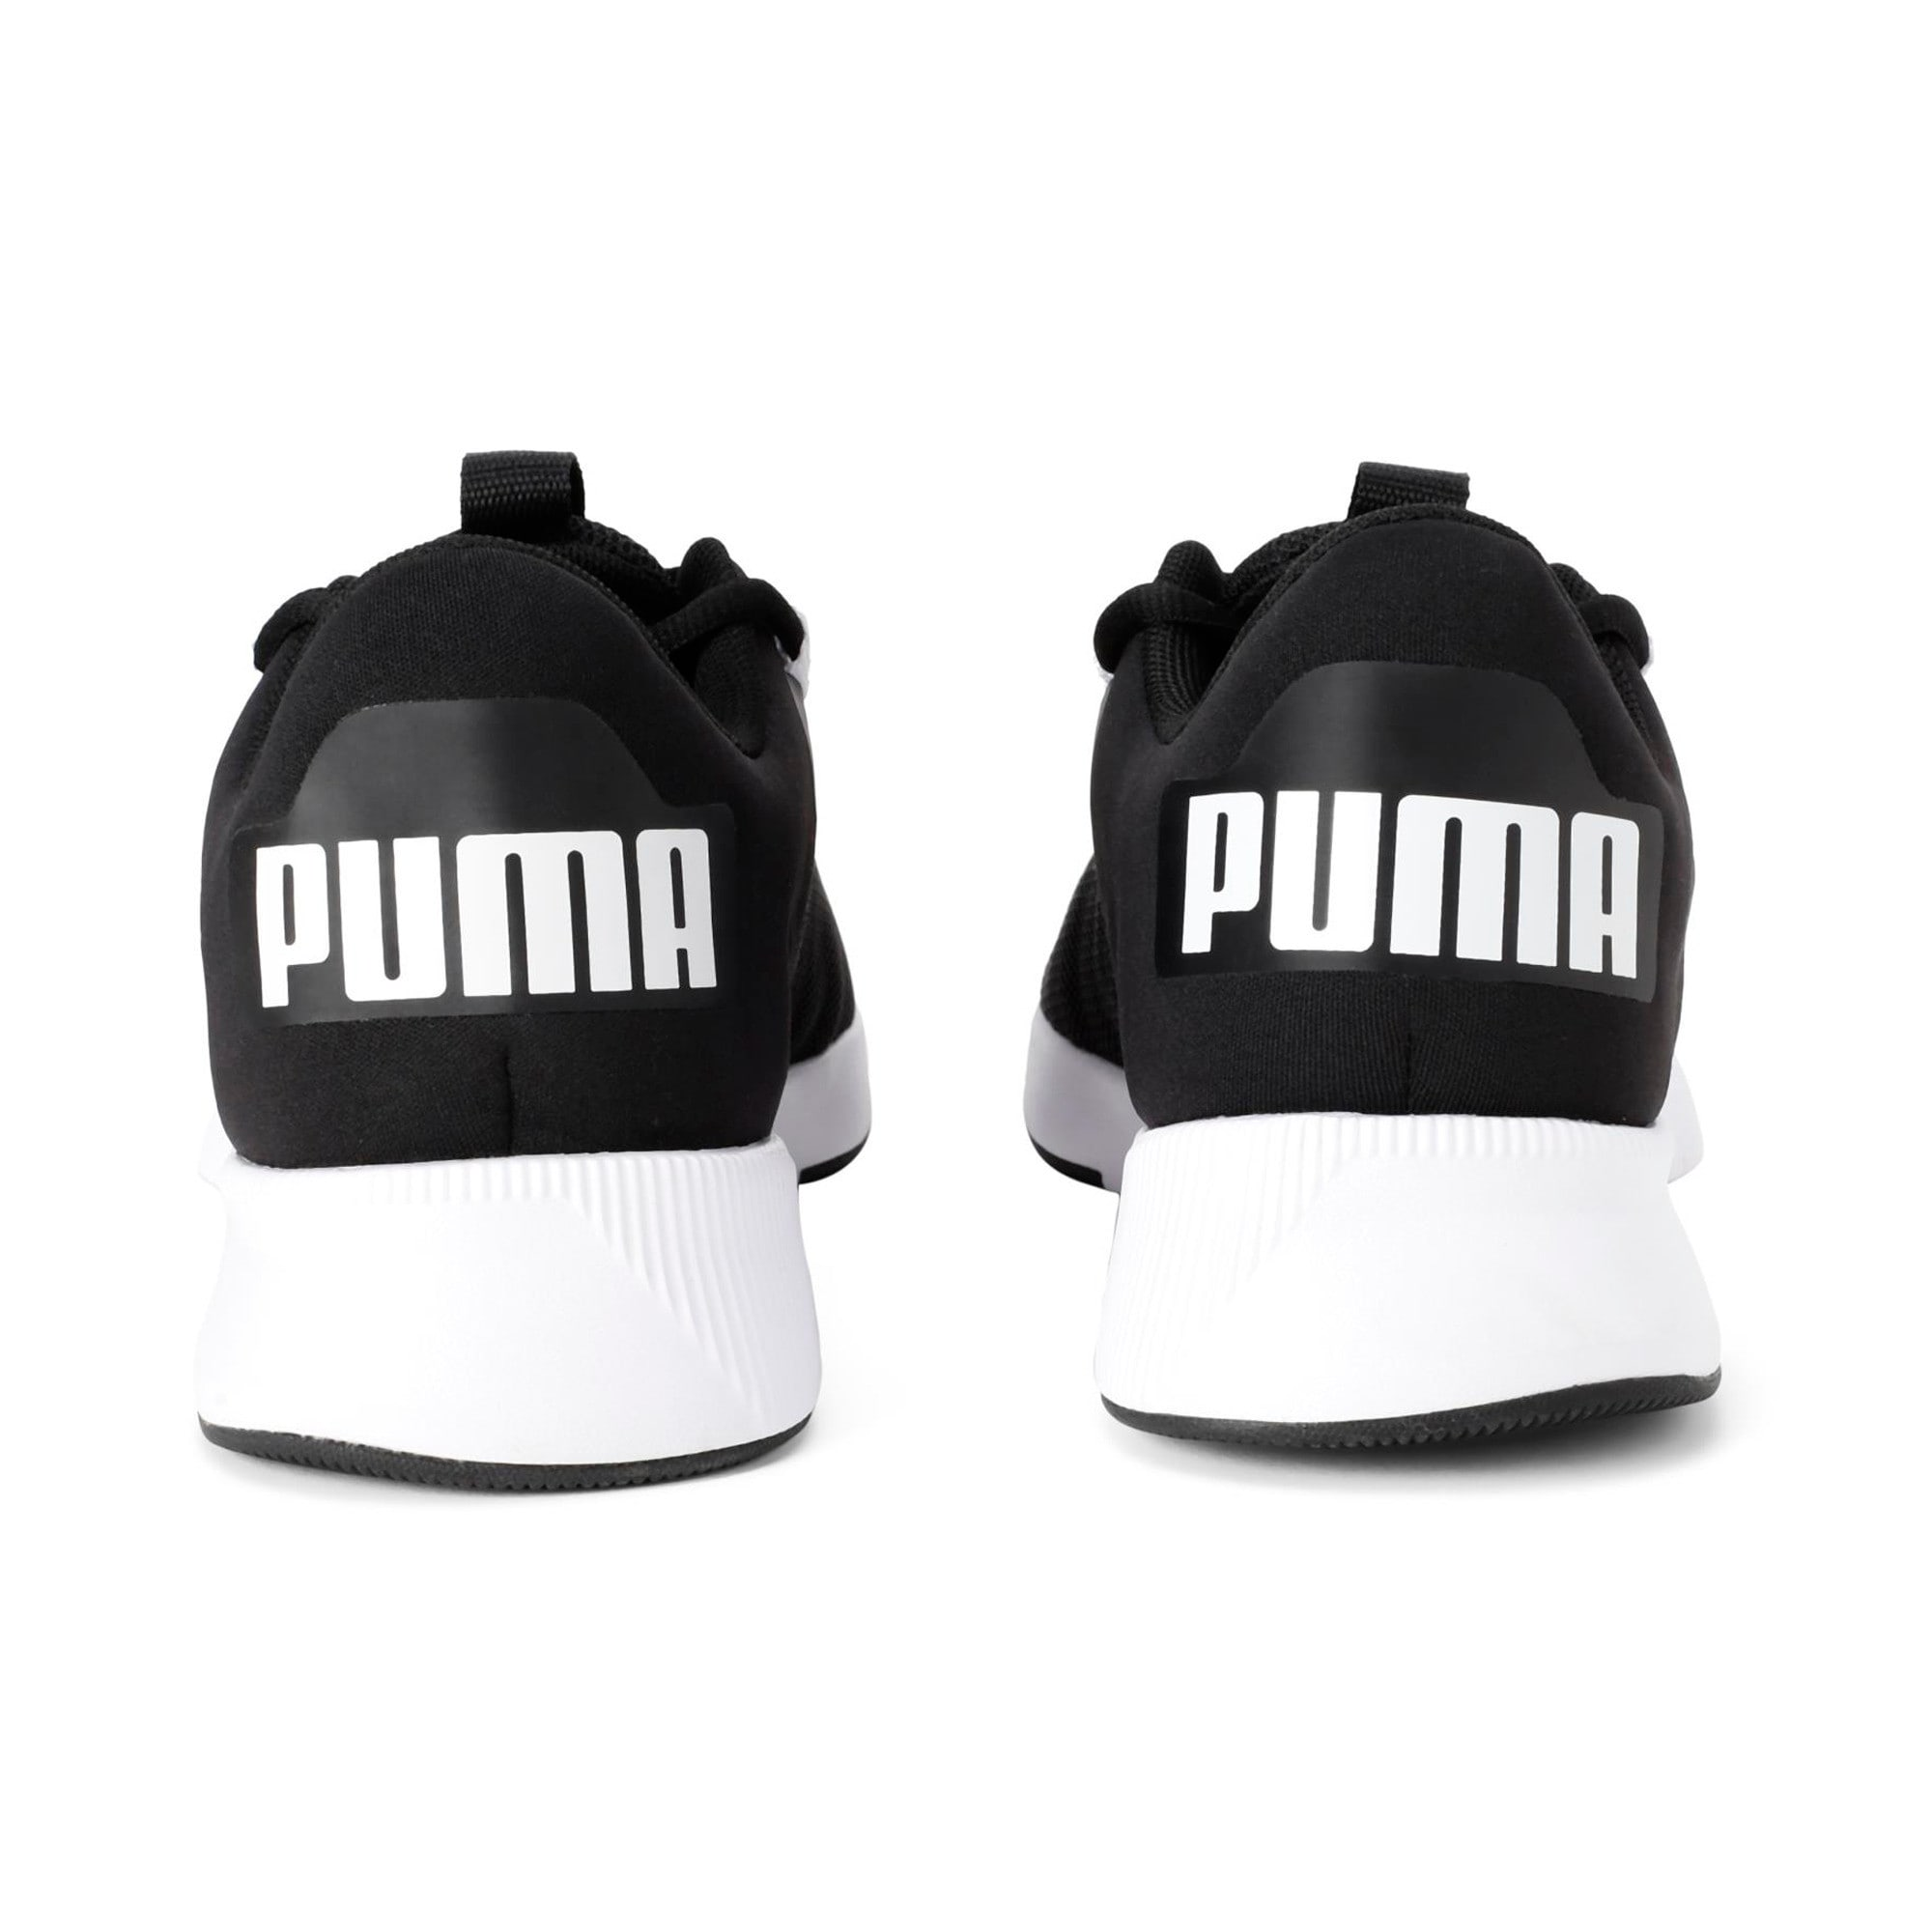 Thumbnail 2 of Flyer Modern Running Shoes, Puma Black-Puma White, medium-IND